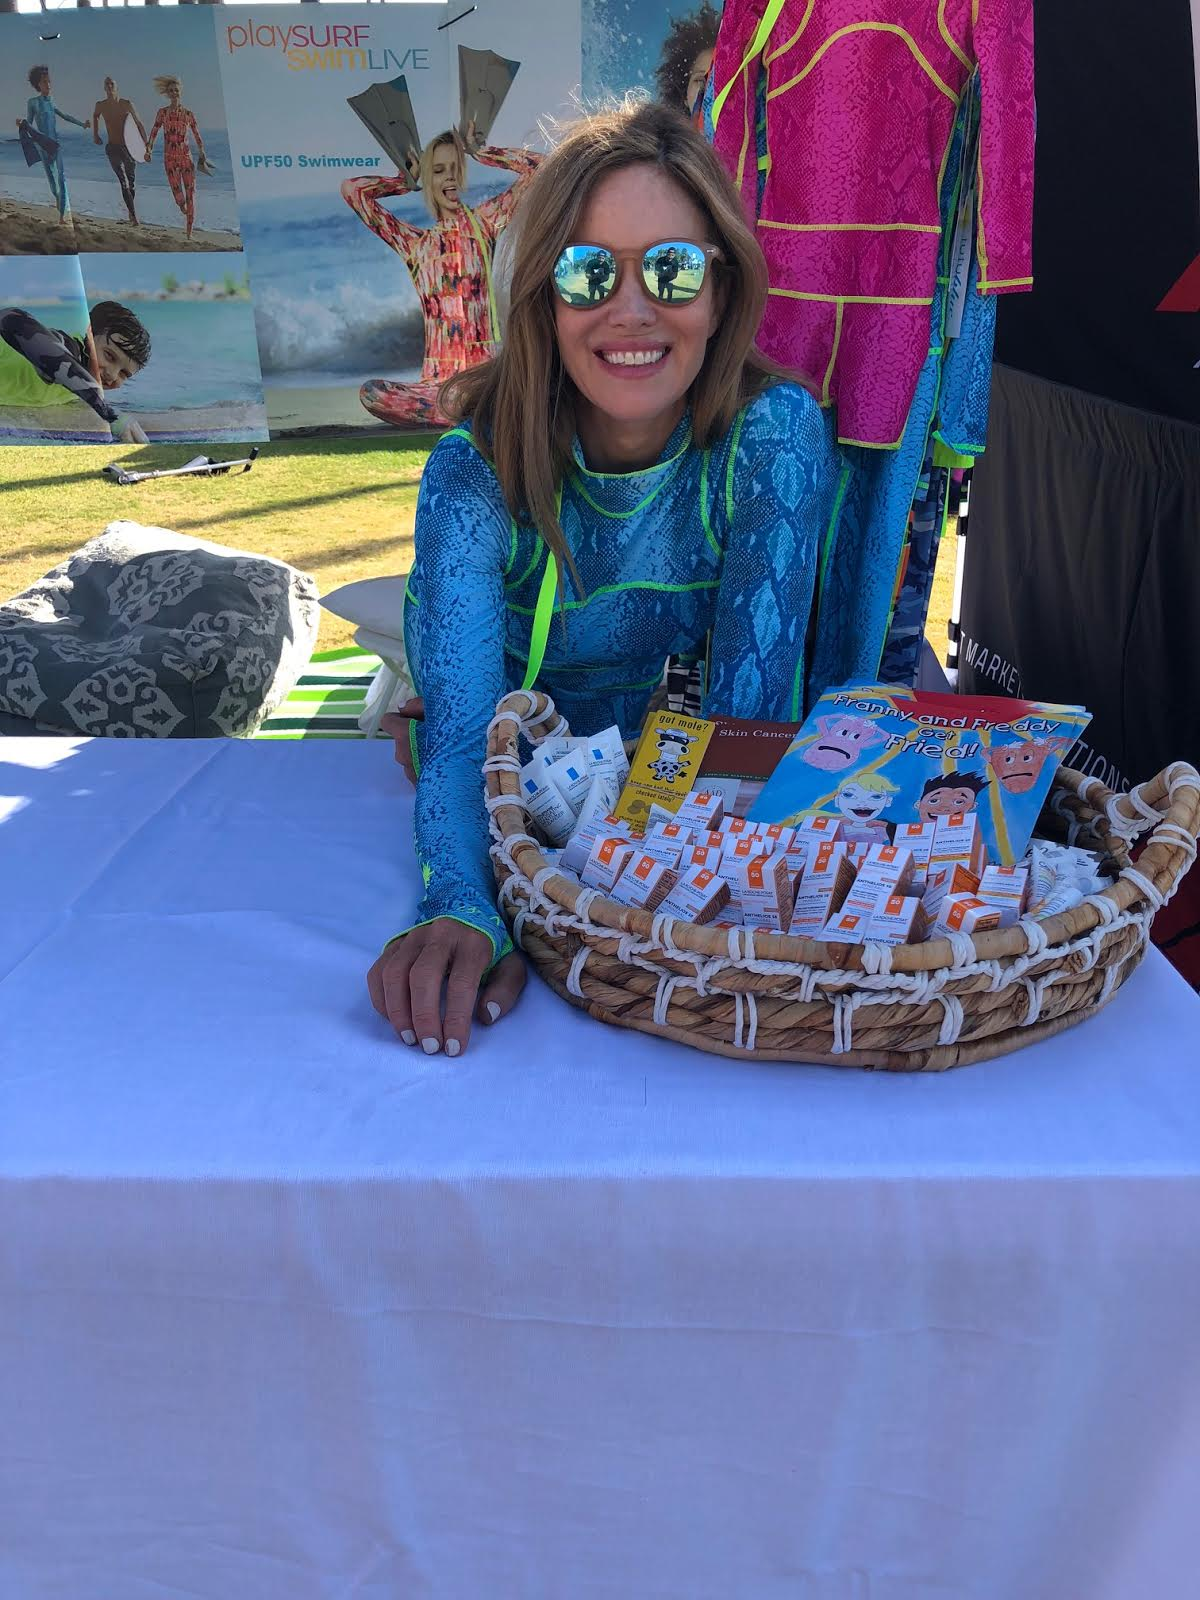 Tutublue Founder & CEO, Sarah Buxton, promotes sun safety and Melanoma awareness at the 2018 Pacific Paddle Games Event in Dana Point, CA.